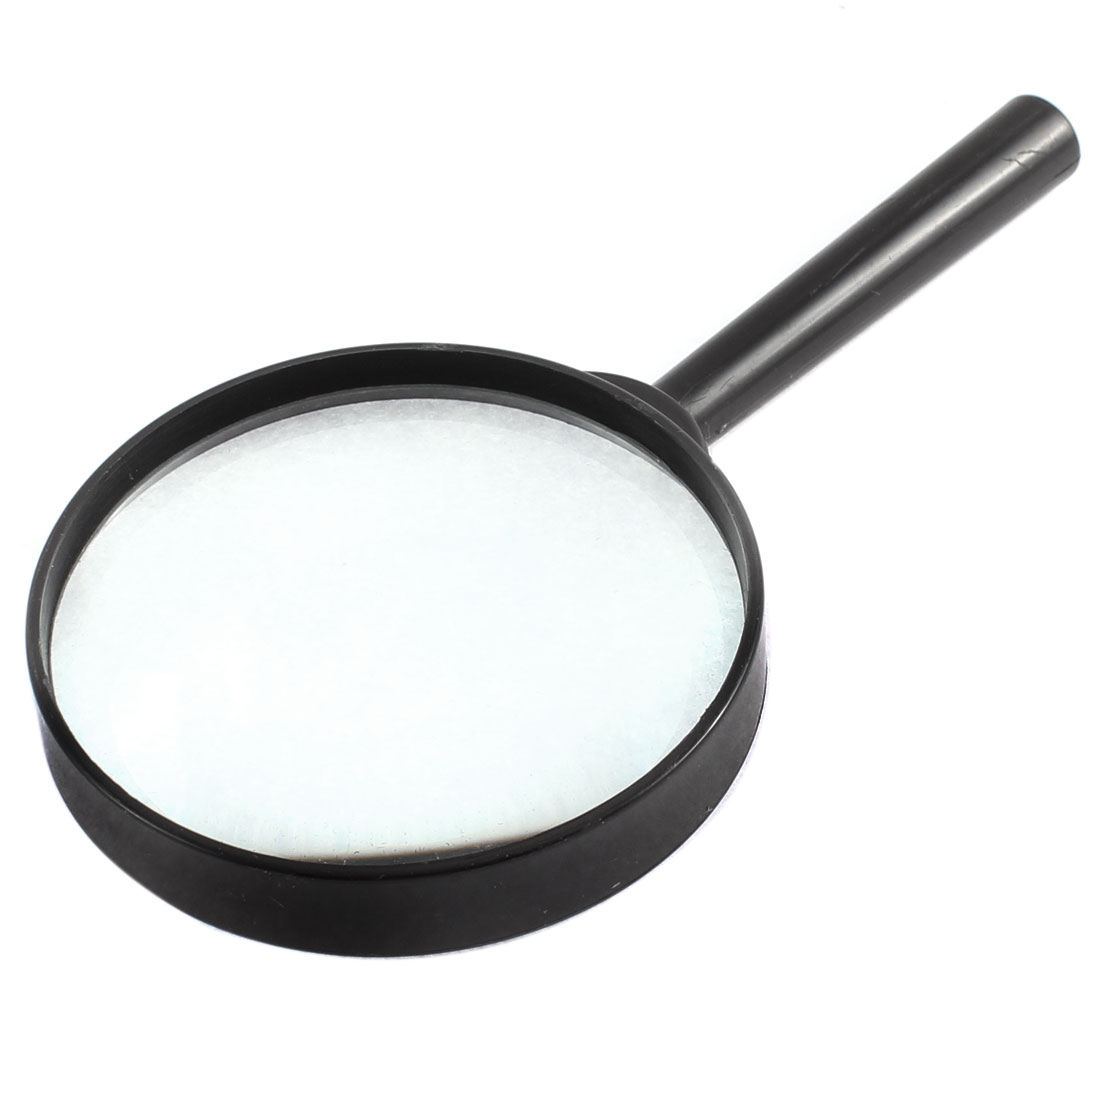 Plastic Frame 90mm Lens 4X Handheld Magnifier Reading Magnifying Glass Jewelry Loupe